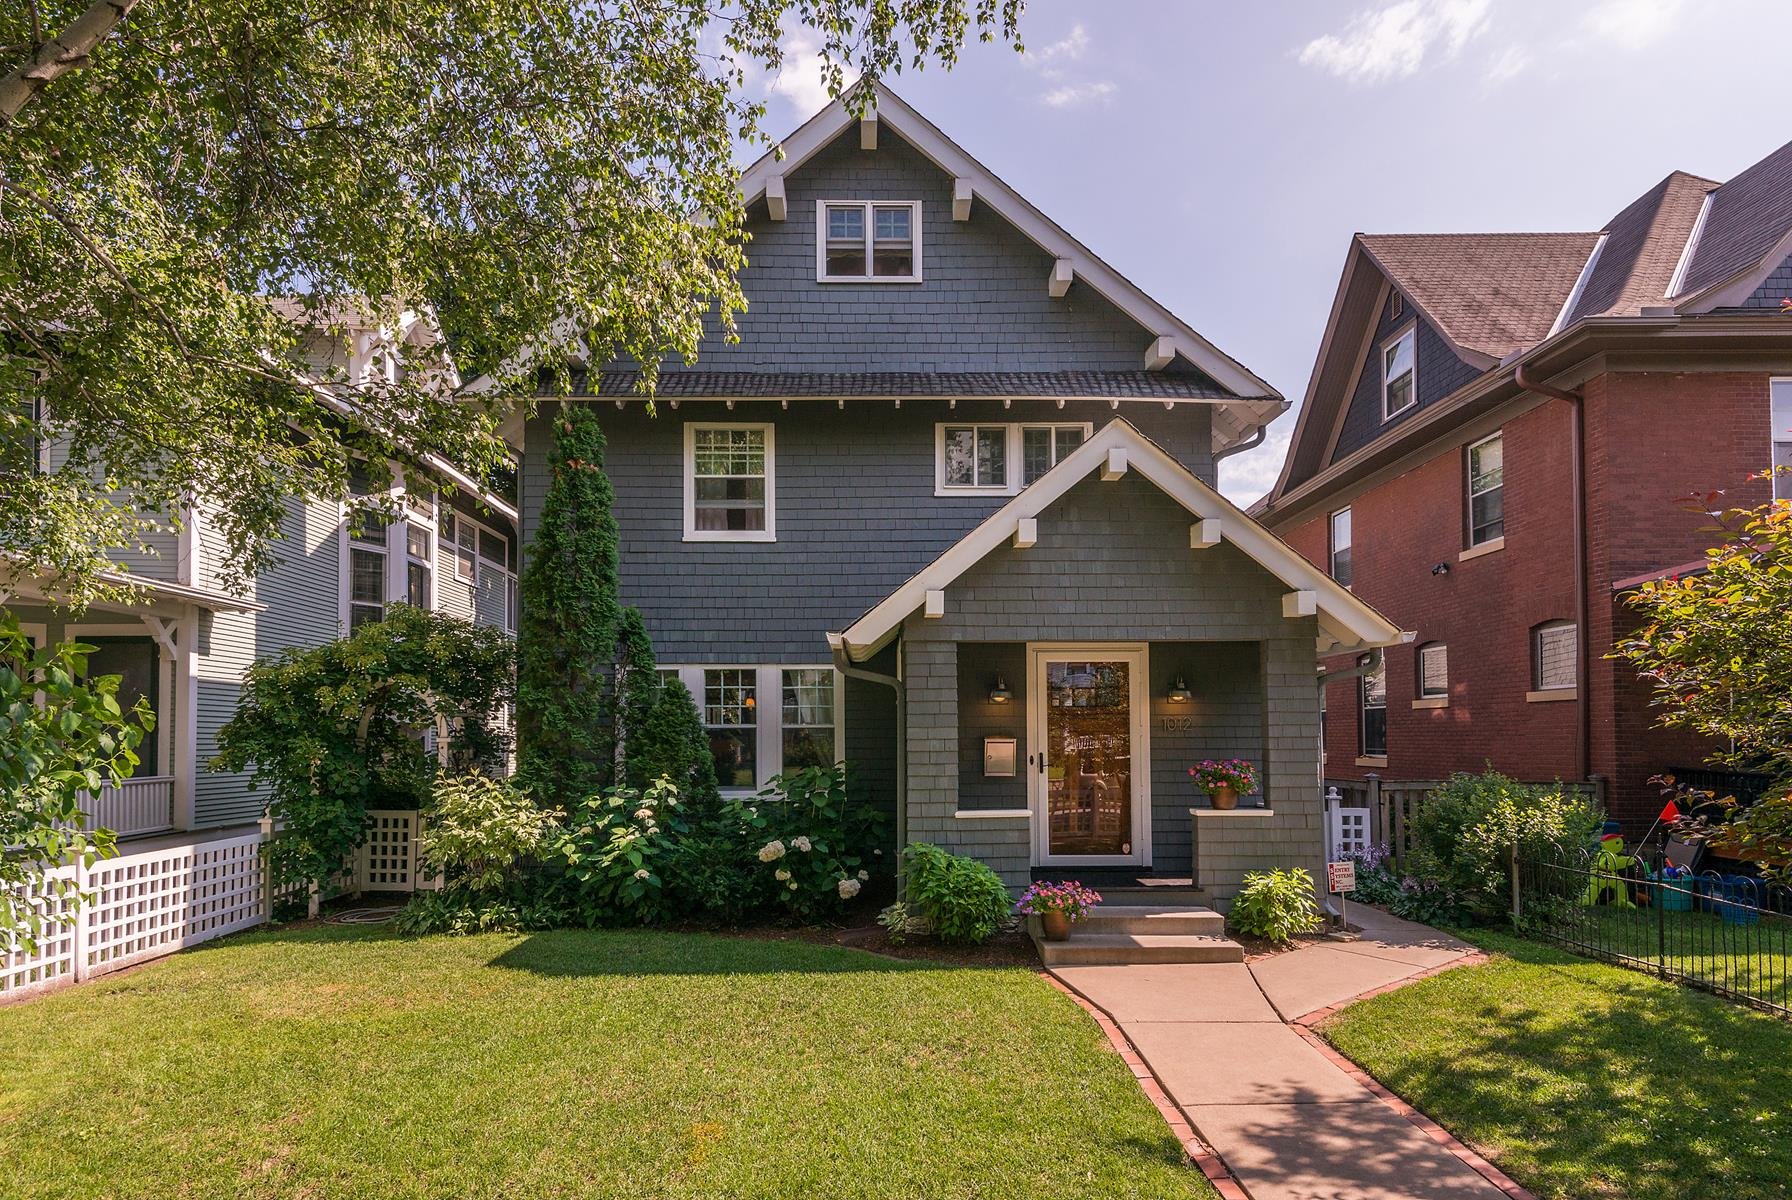 Single Family Home for Sale at 1012 Portland Avenue Summit-University, St. Paul, Minnesota 55104 United States